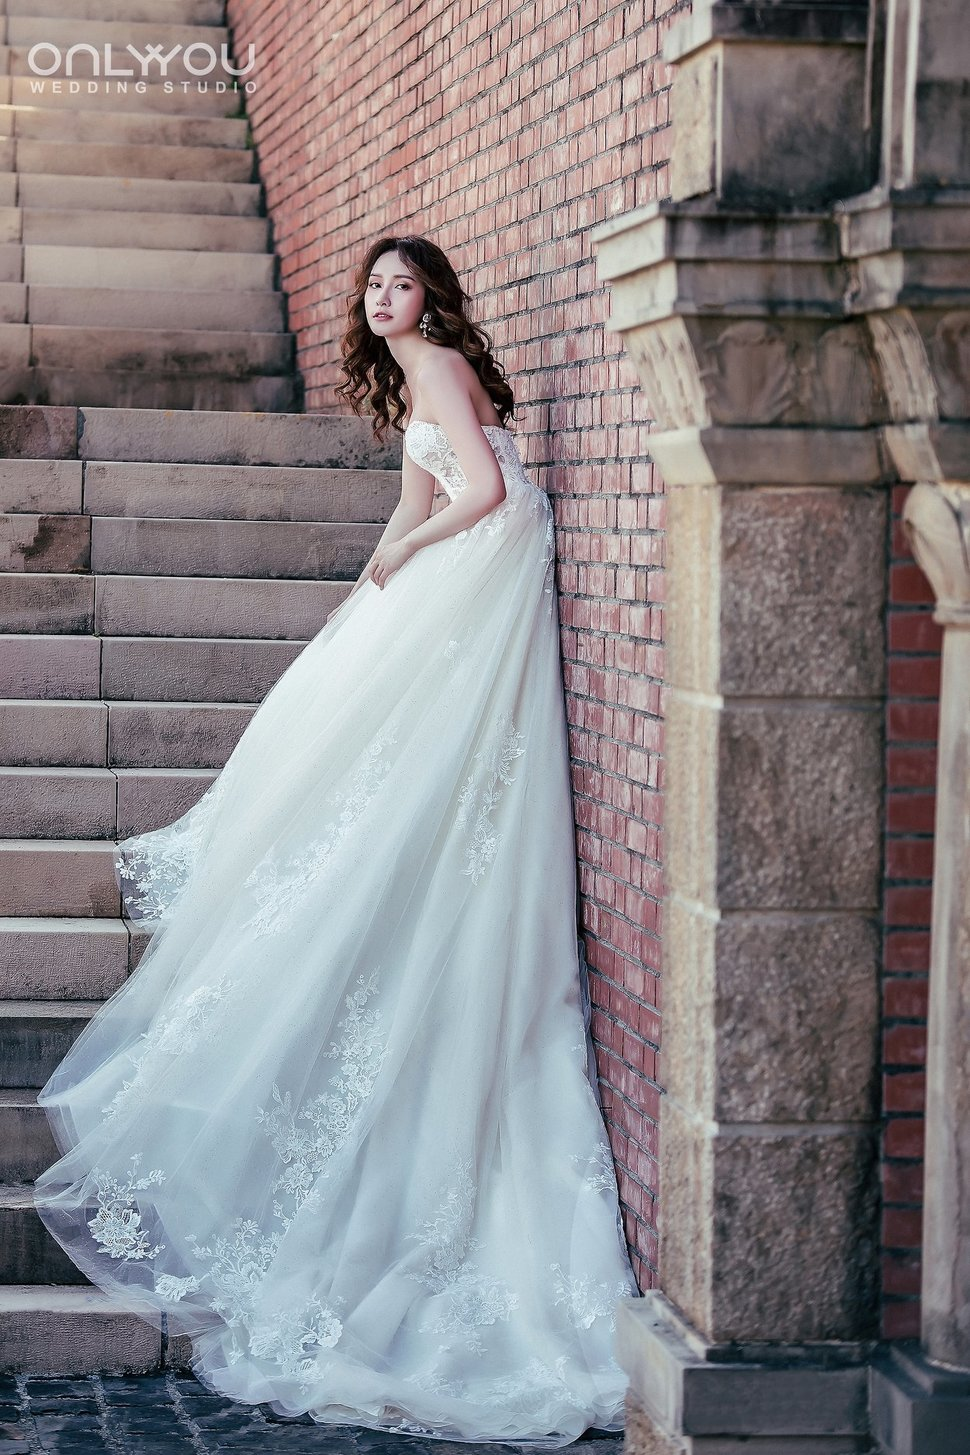 69271814_2340385449350421_1778944504468865024_o - ONLY YOU 唯你婚紗攝影《結婚吧》